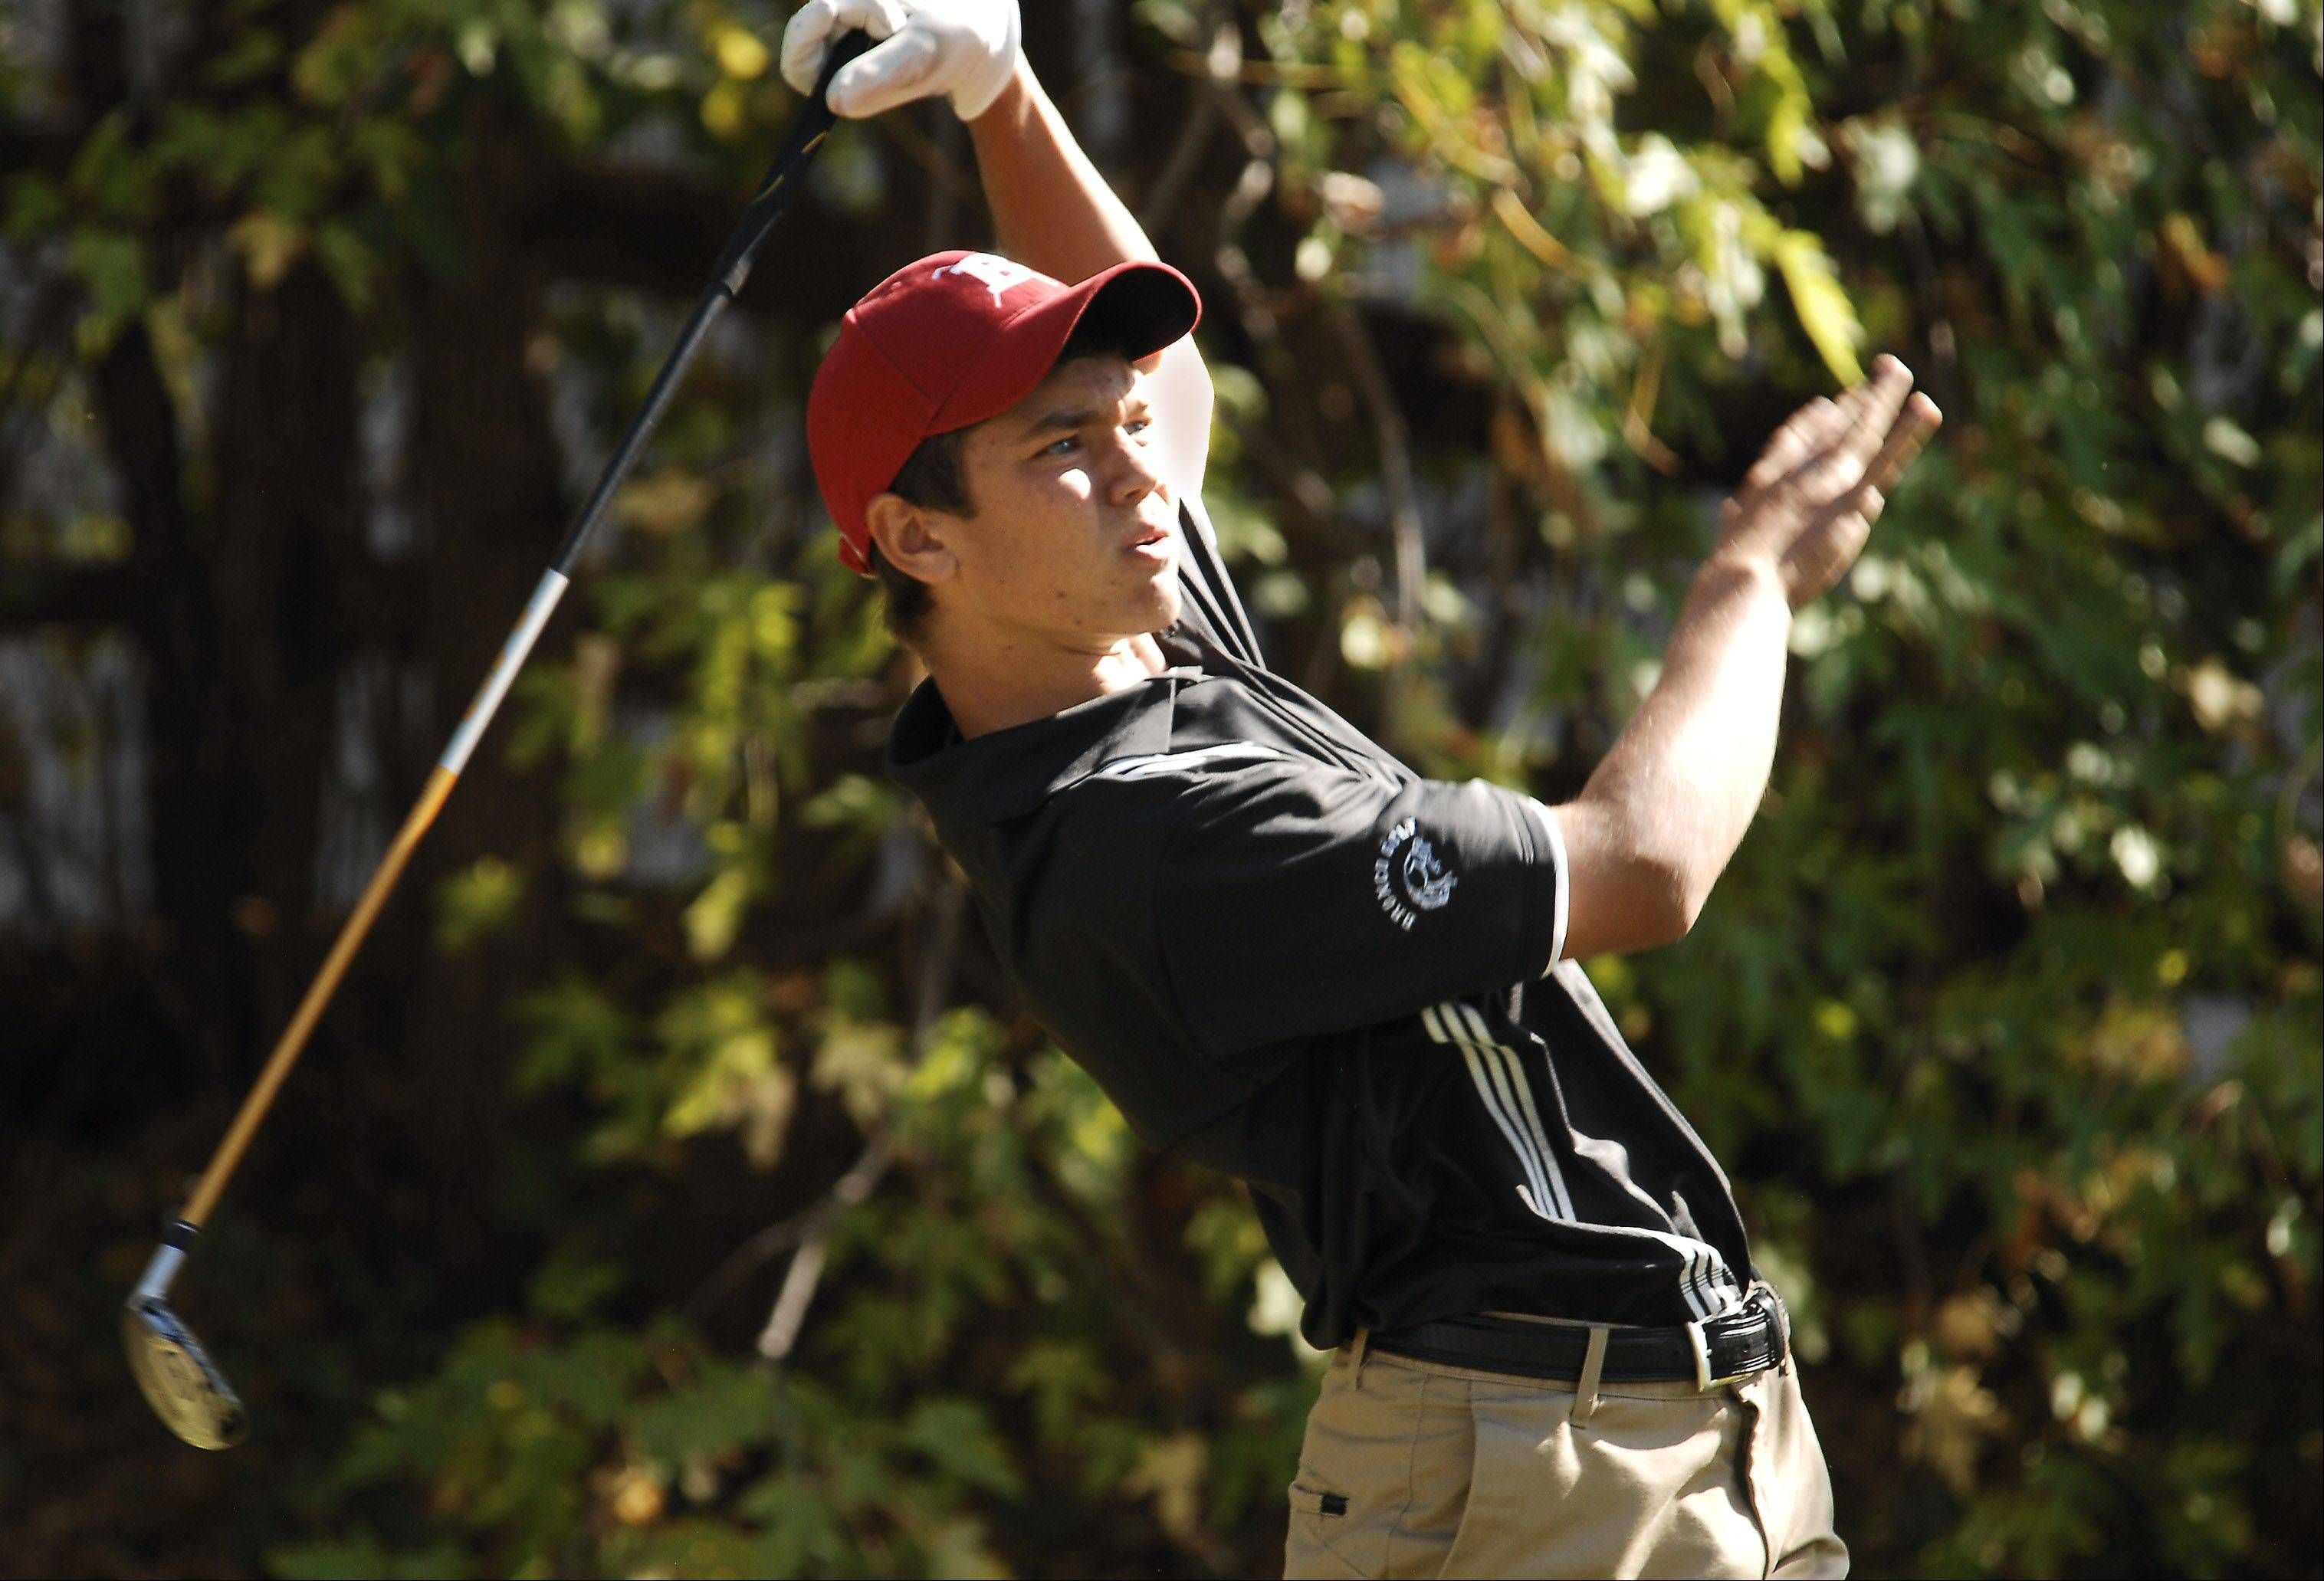 Senior Mike Stathakis is looking for a big finish for Barrington in the Class 3A boys golf state tournament this weekend in Bloomington.